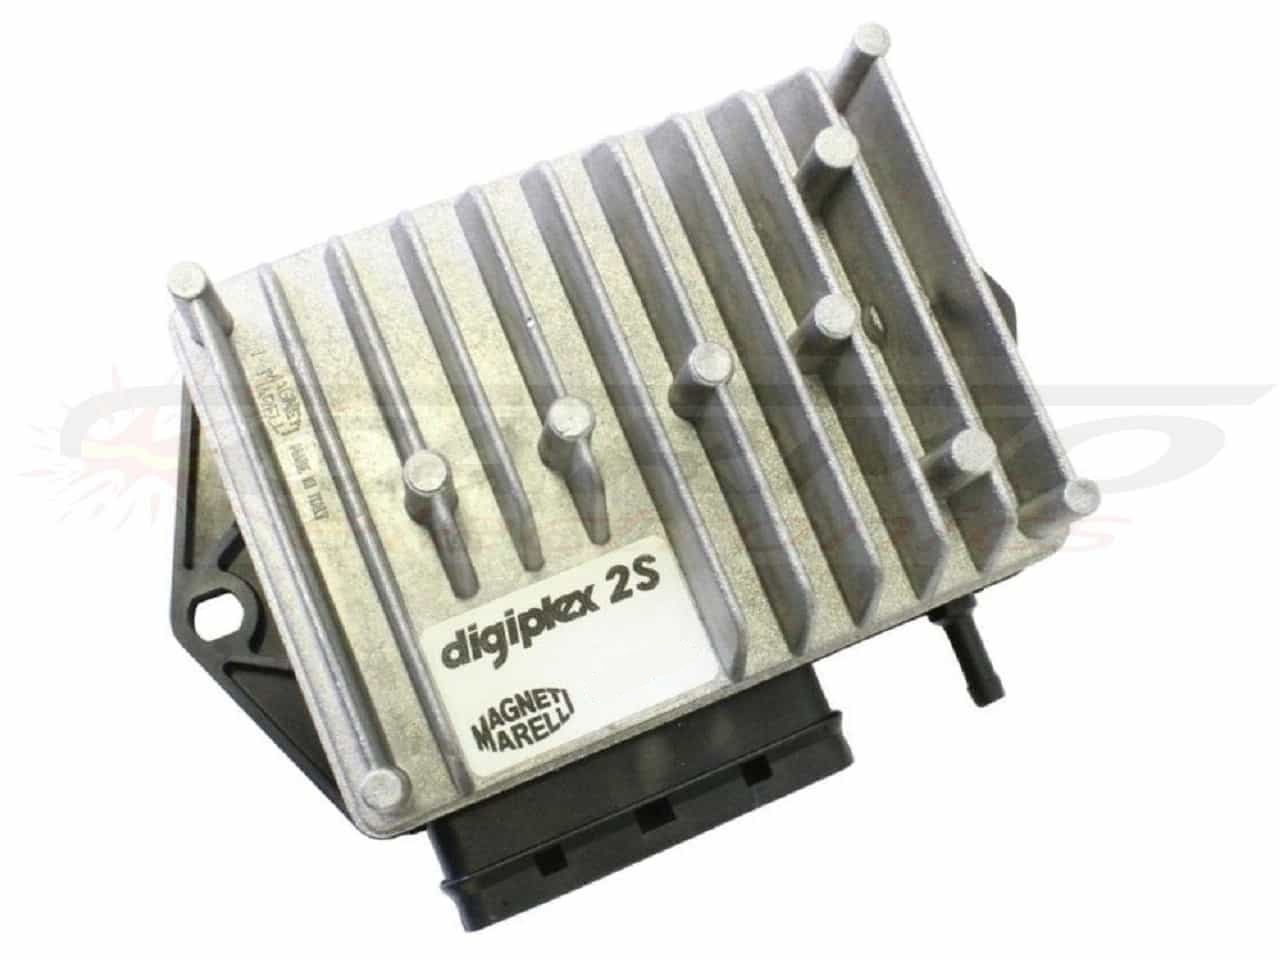 Digiplex 2S CDI unit ECU ontsteking